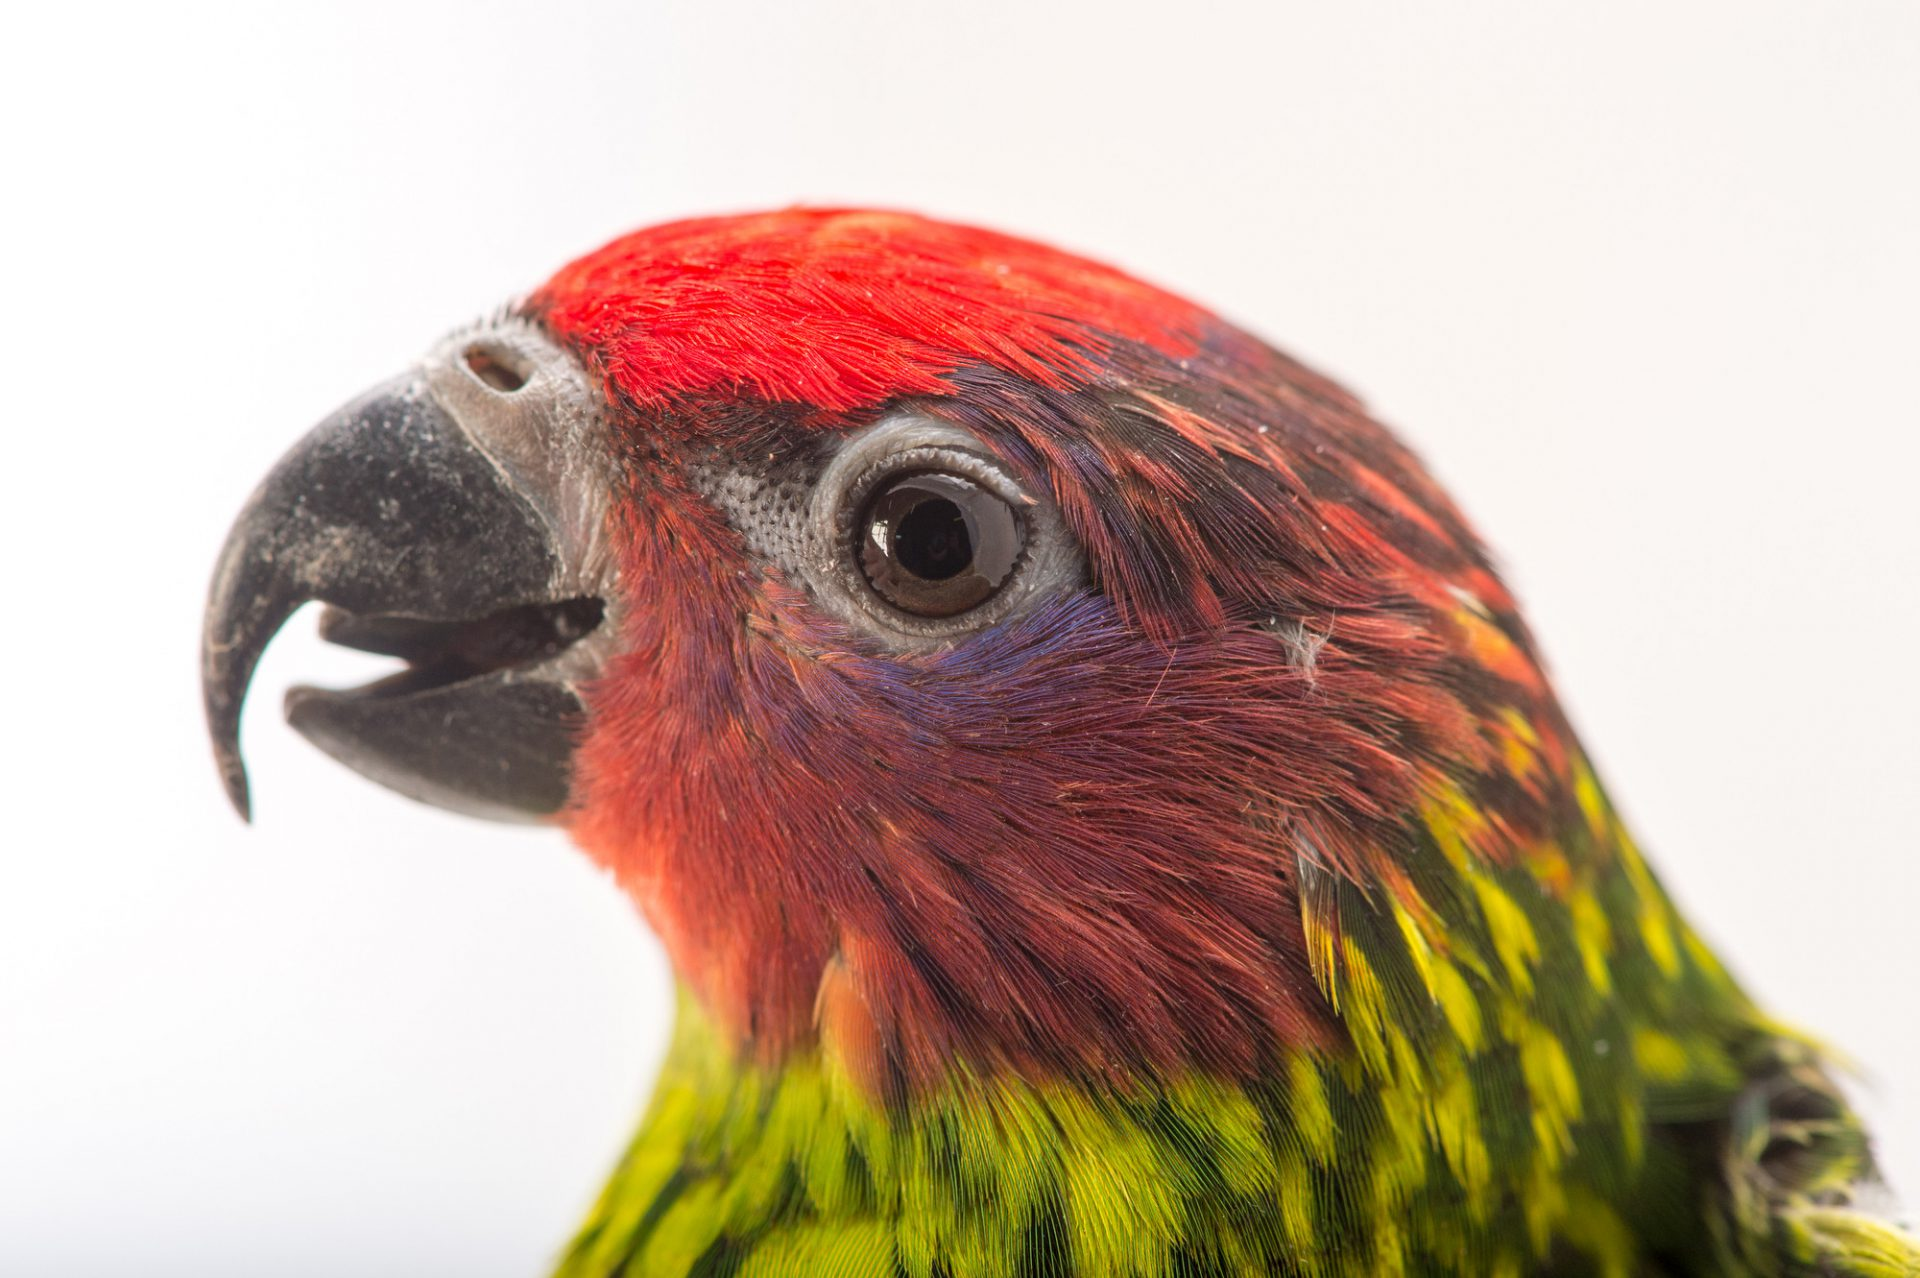 Picture of a Goldie's' lorikeet (Psitteuteles goldiei) at the Columbus Zoo.